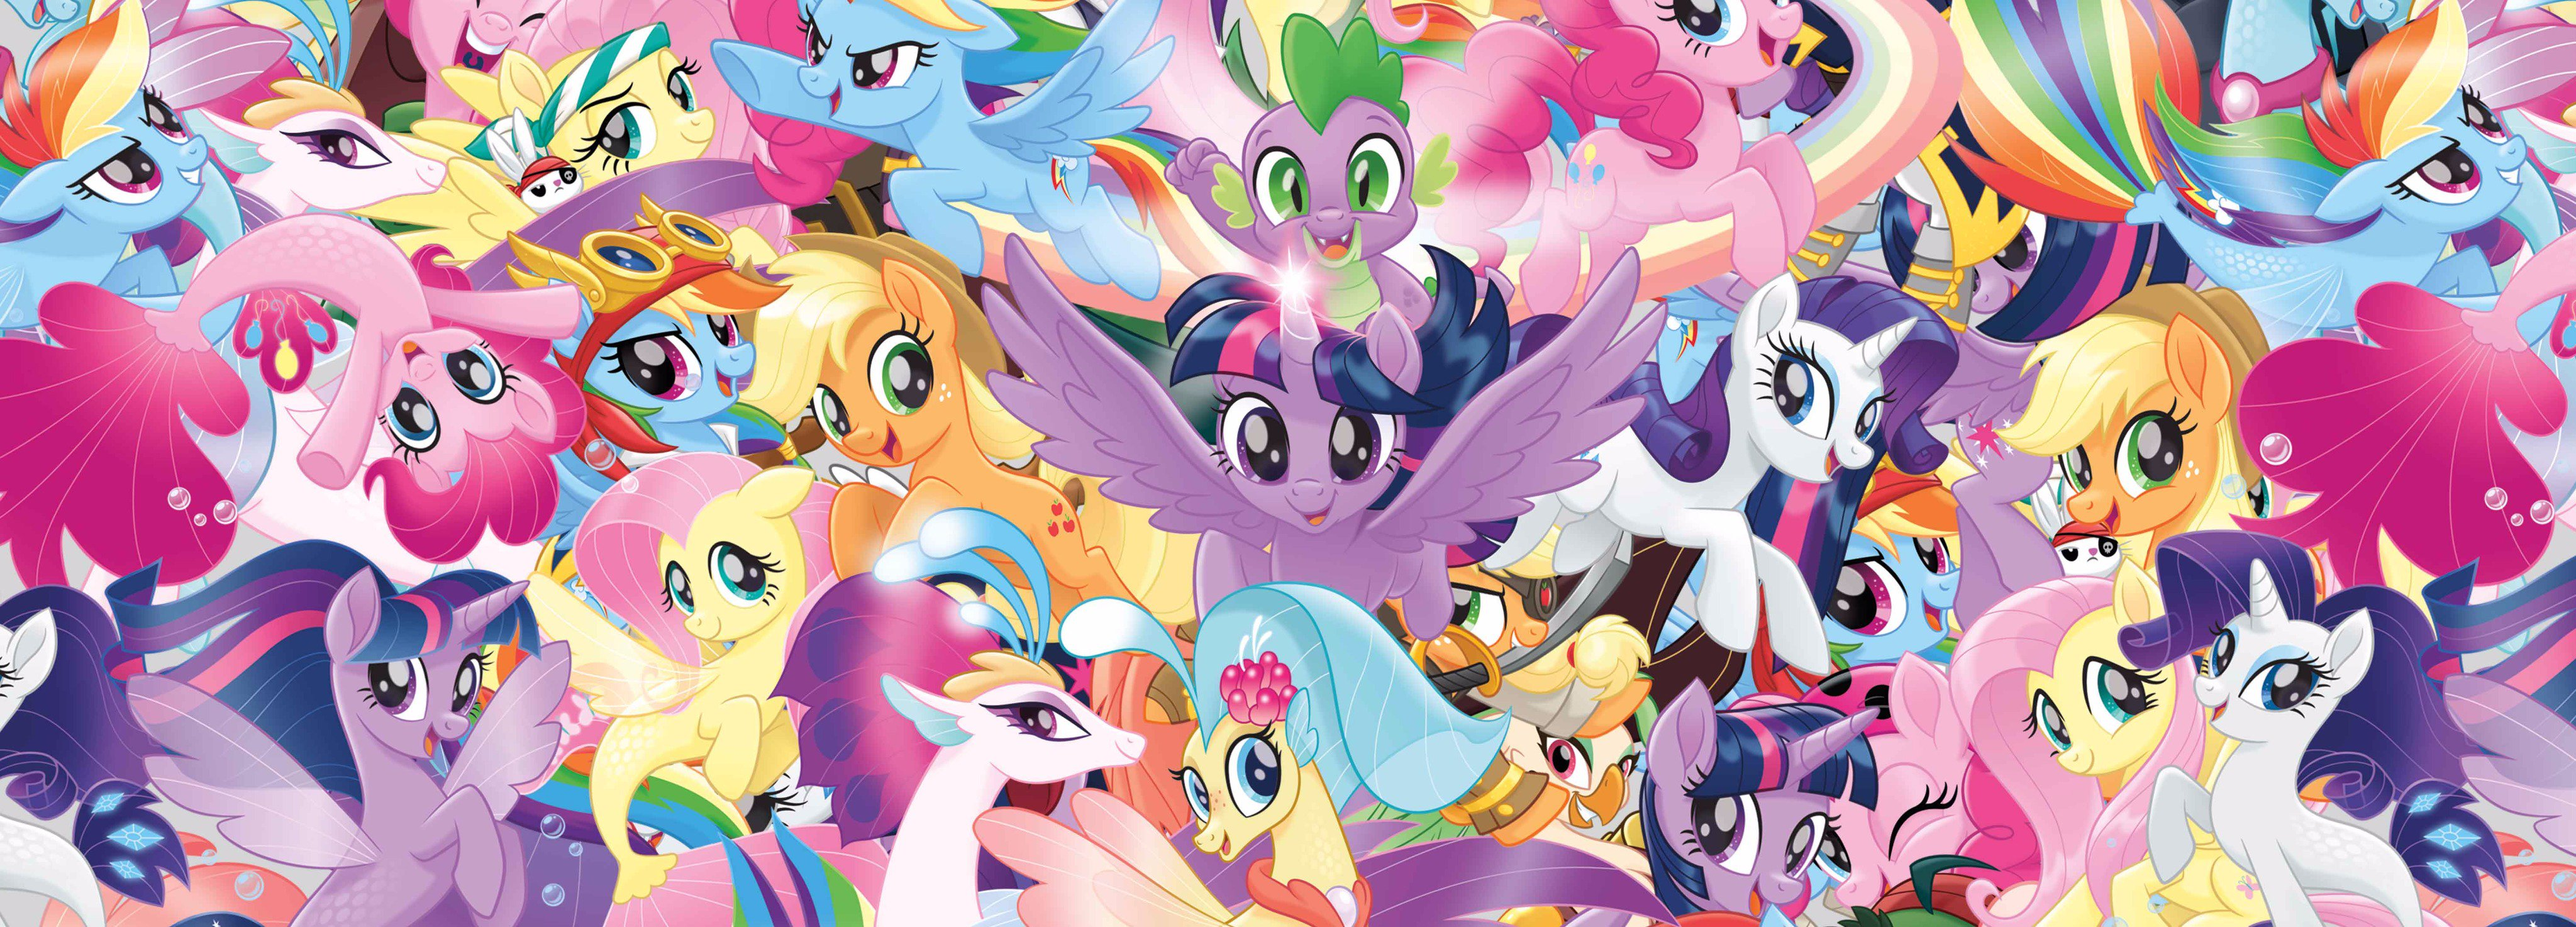 image - mlp the movie character wallpaper | my little pony